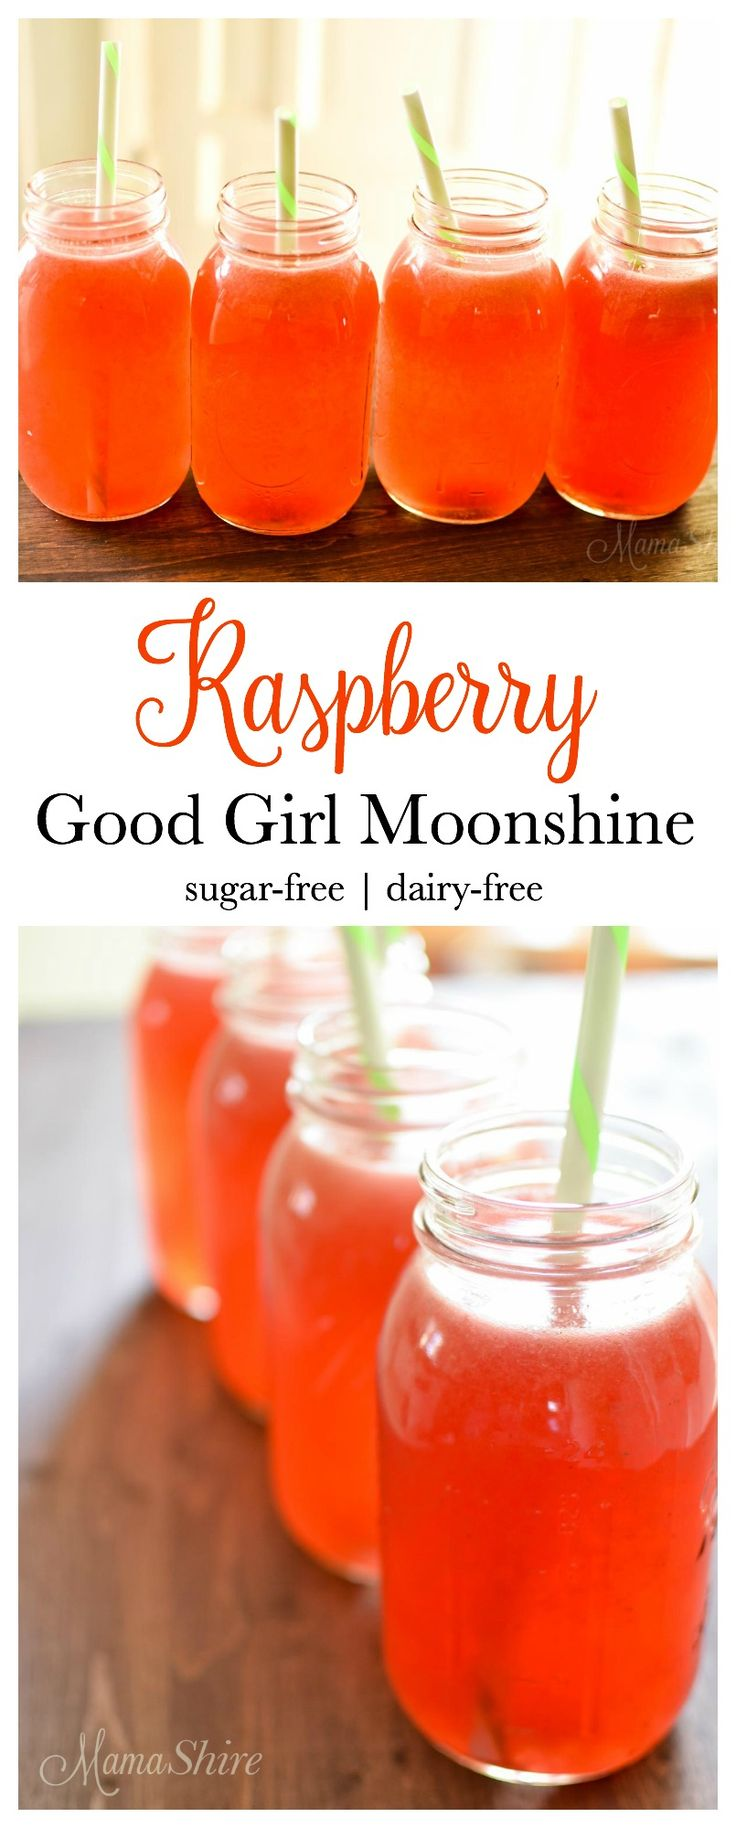 Raspberry Good Girl Moonshine. Our family's favorite drink with good for you ingredients. THM Sipper Drink.